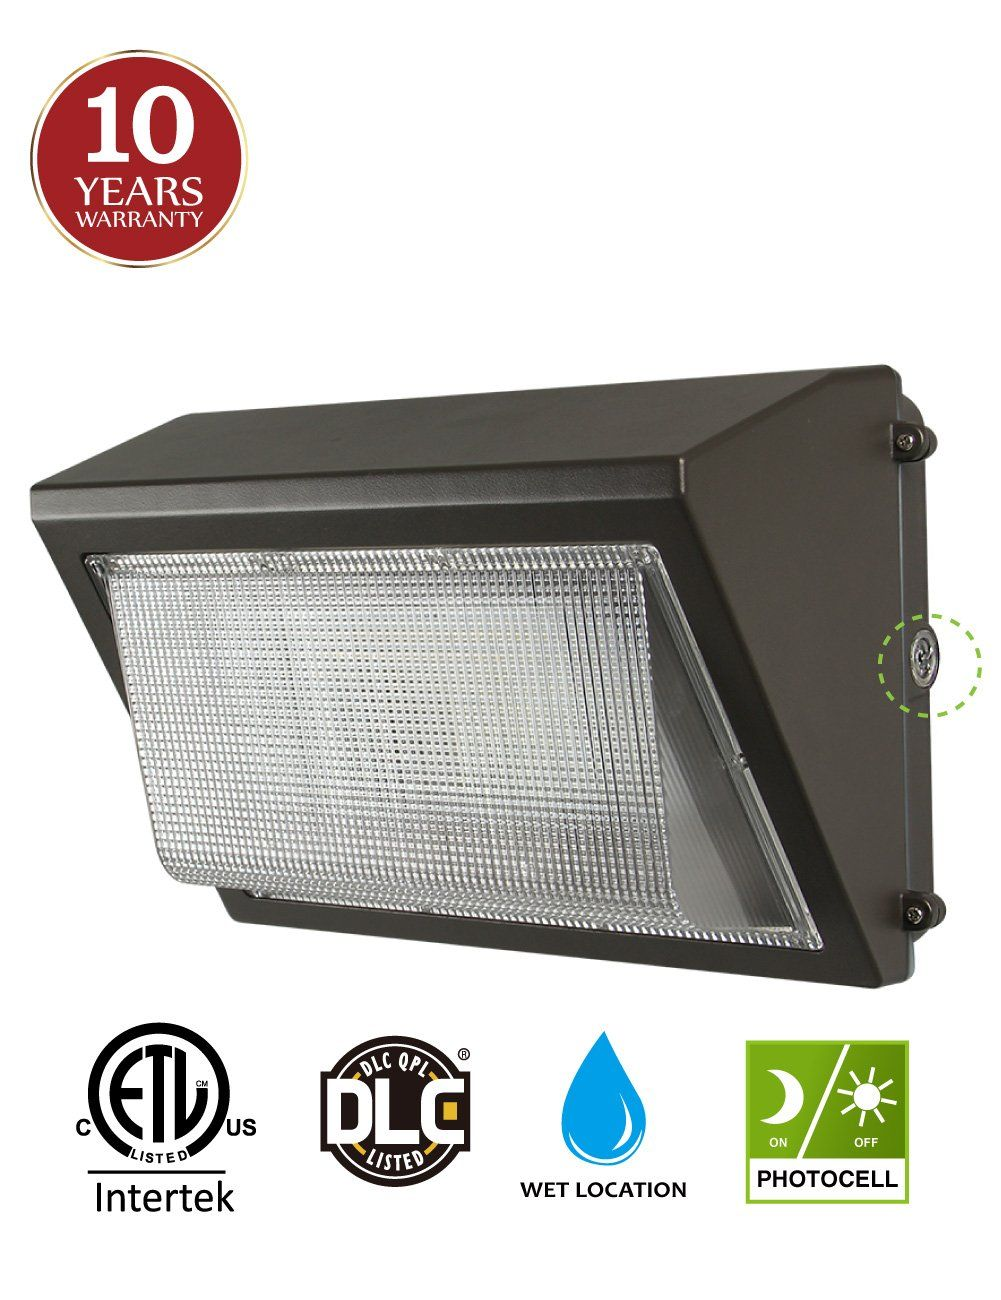 Led wall pack with dusk to dawn photocell 60w waterproof outdoor commercial lighting fixture 200 300w hps mh replacement 5000k 7200lm 100 277vac 10 year